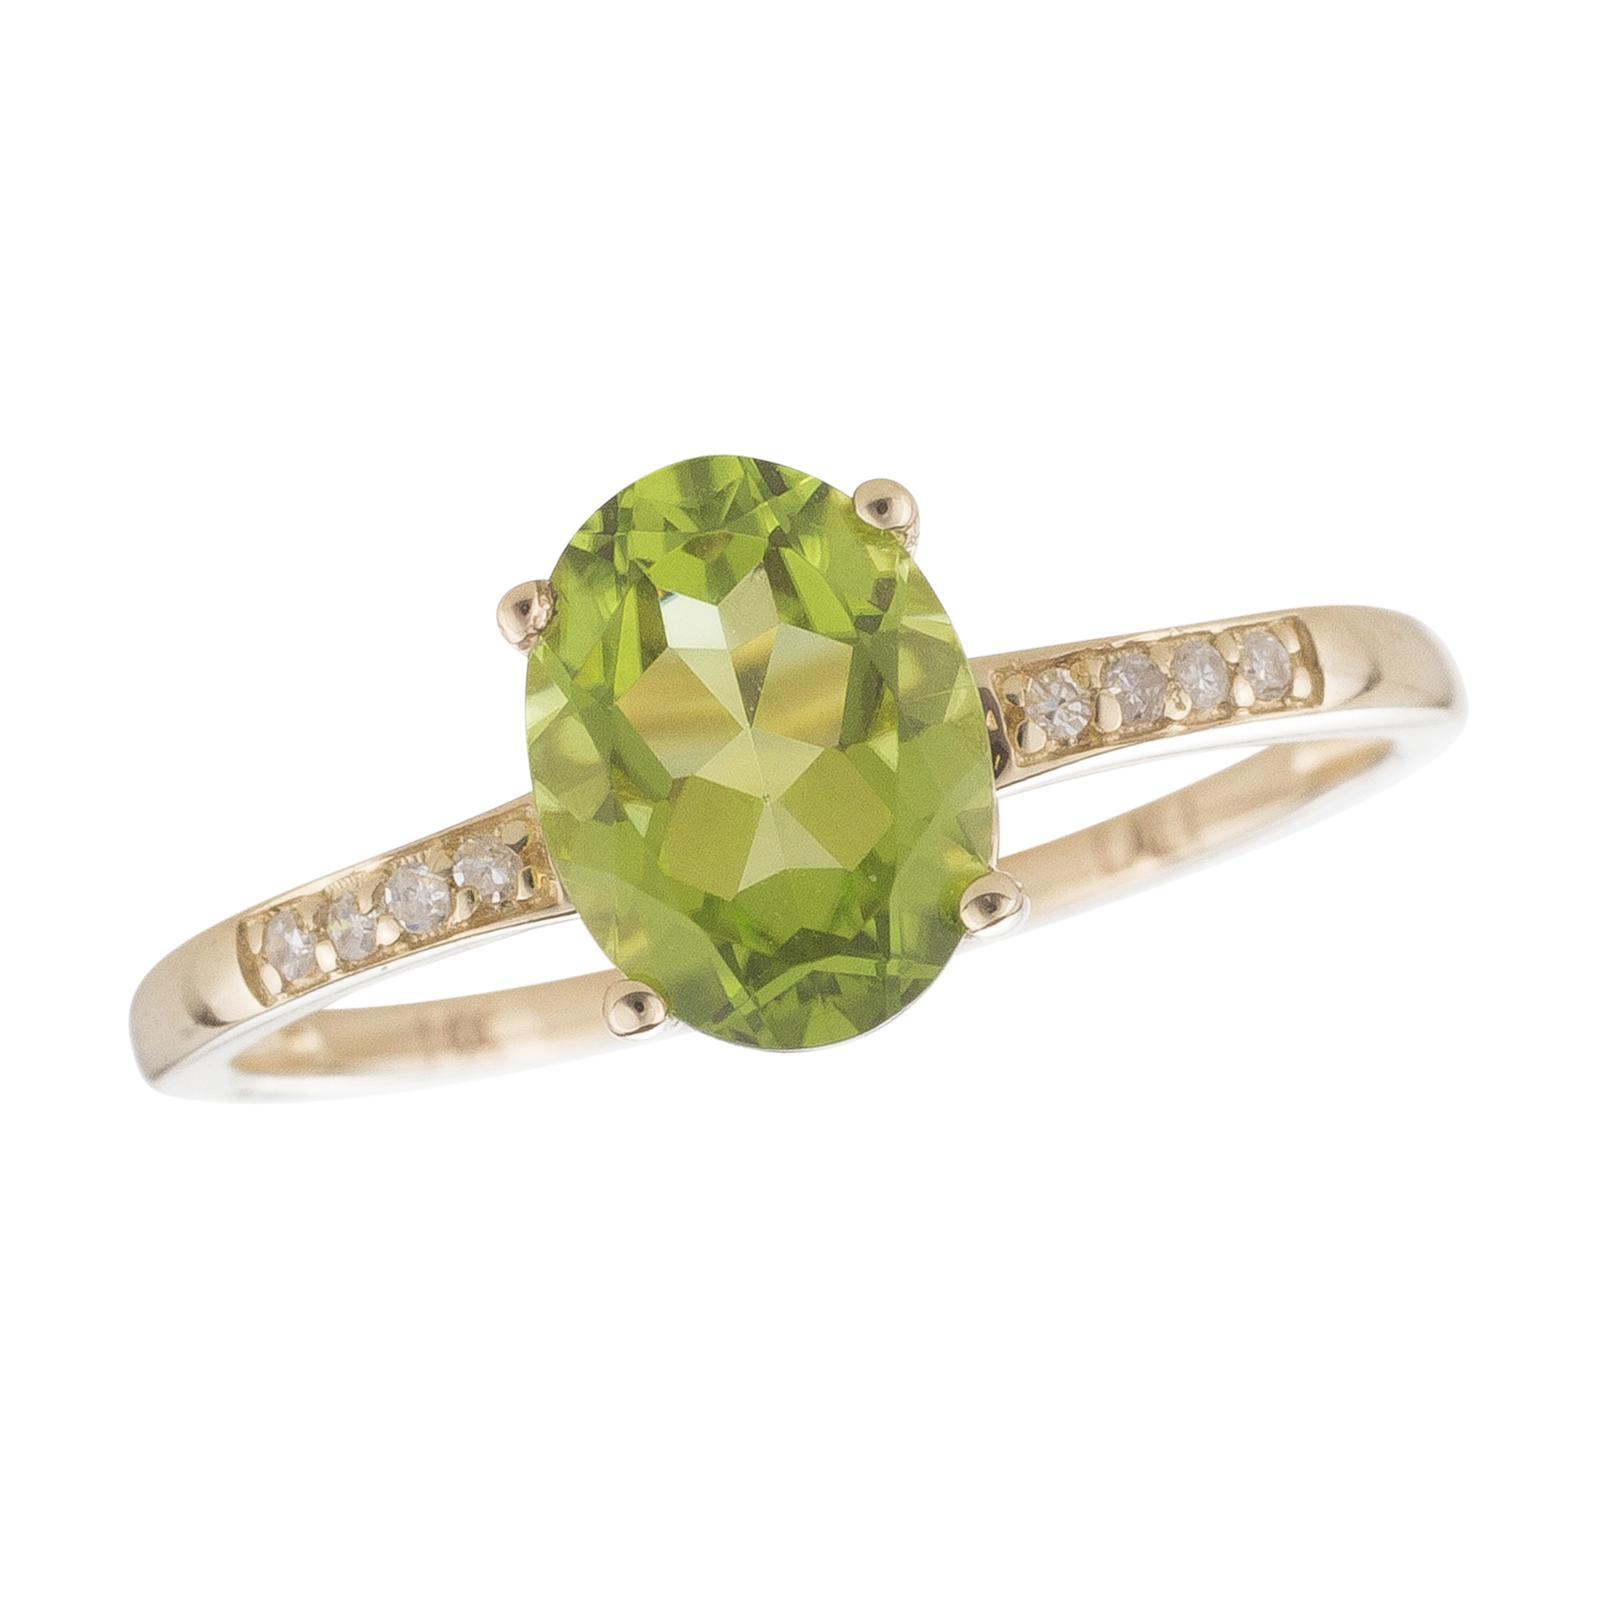 14k Yellow Gold Diamond and Peridot Ring